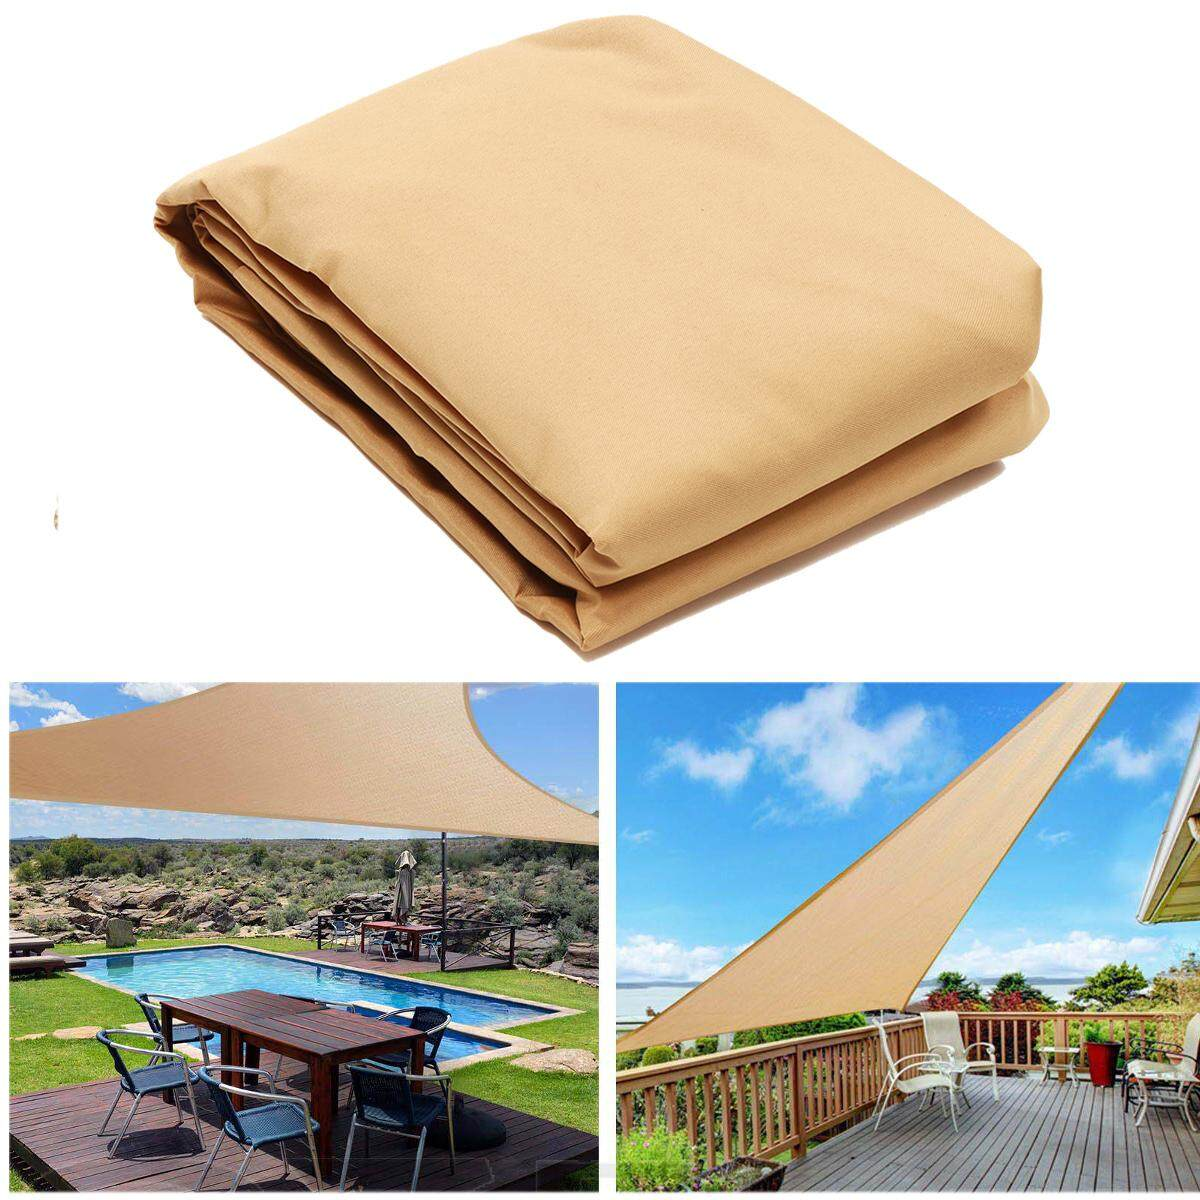 5m X 5m X 5m Sun Shade Sail Triangle Outdoor Patio Canopy Anti 90% Uv Top Shelter Pe Cloth 300d (160g) Awnings By Glimmer.